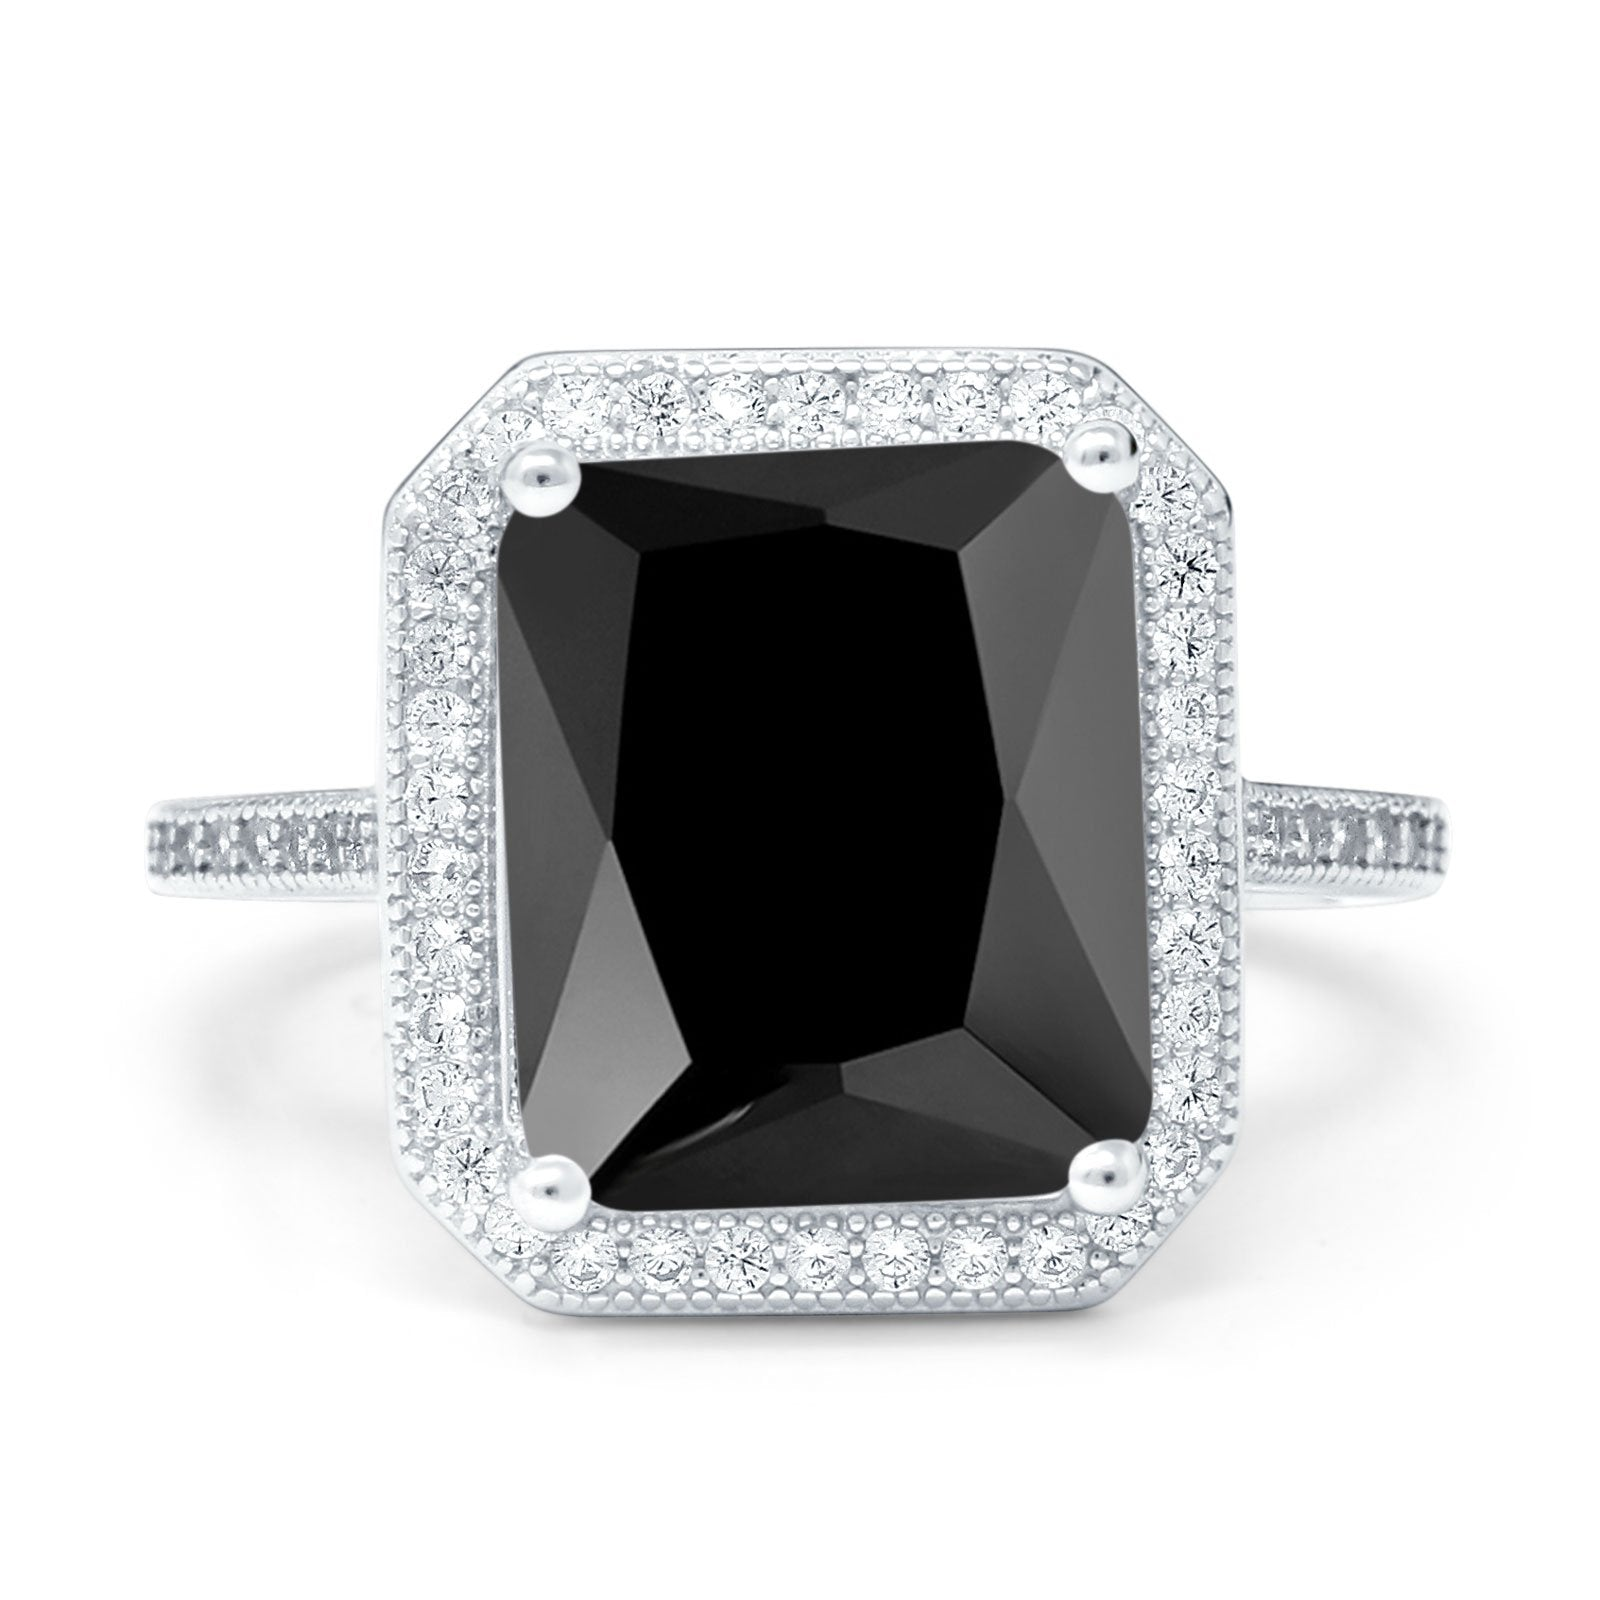 Halo Emerald Cut Engagement Ring Simulated Cubic Zirconia 925 Sterling Silver